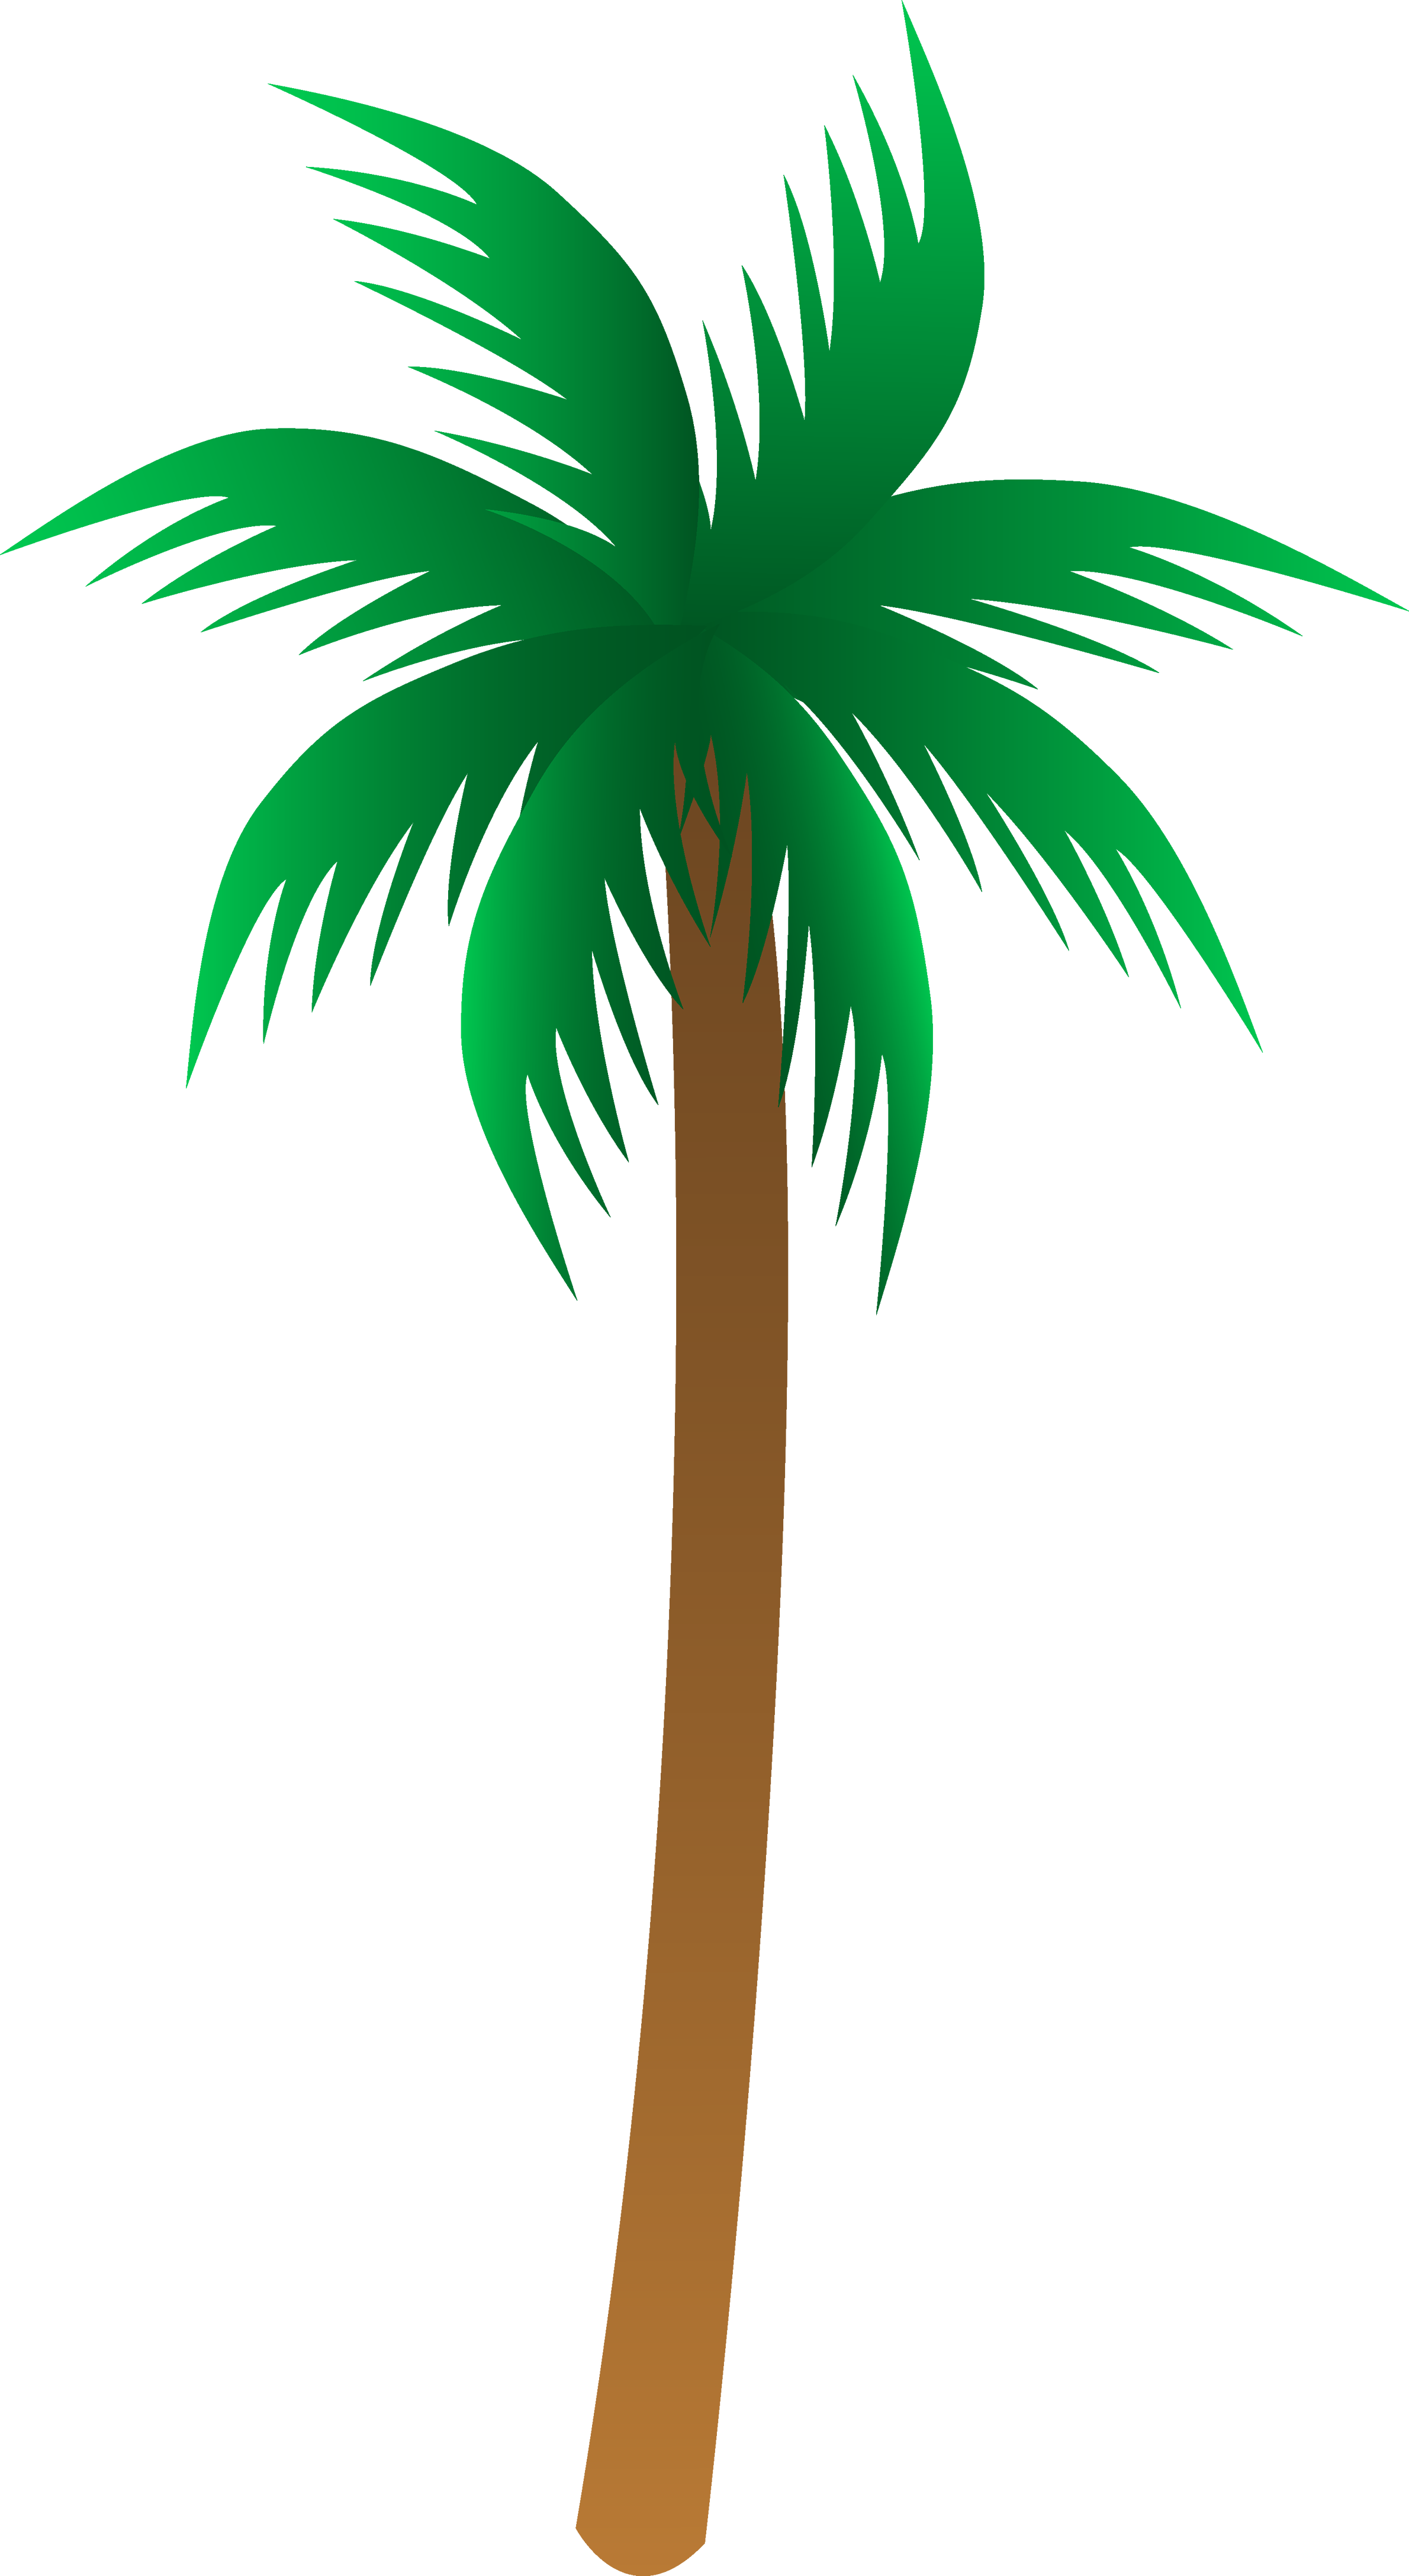 Palm tree transparent background png. Images download free pictures